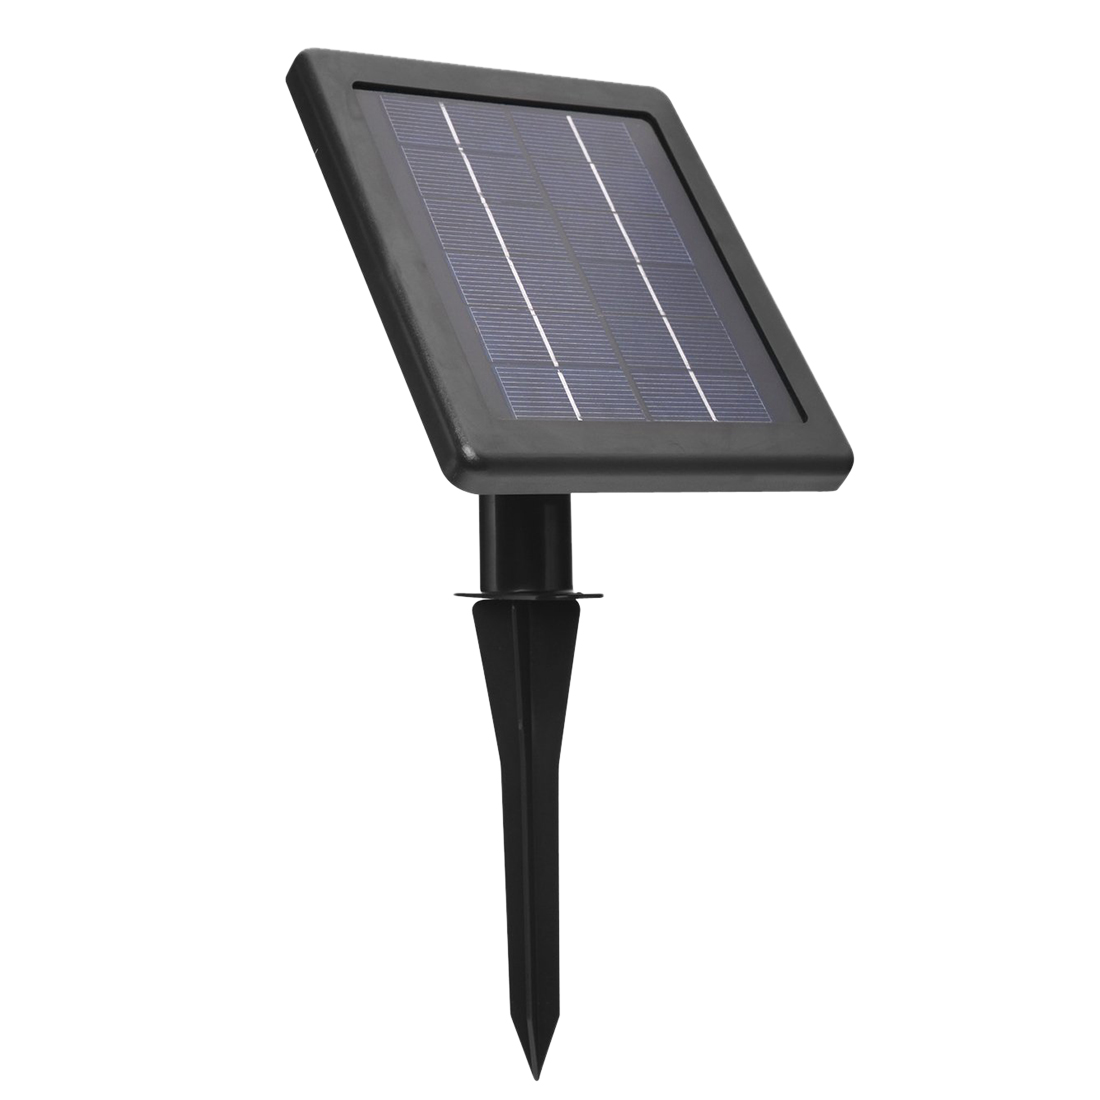 CSS Rechargeable Waterproof Solar Powered 30 LED Spot Light White Lamp with Lithium Battery Inside for Lawn, Garden, Road, Hot